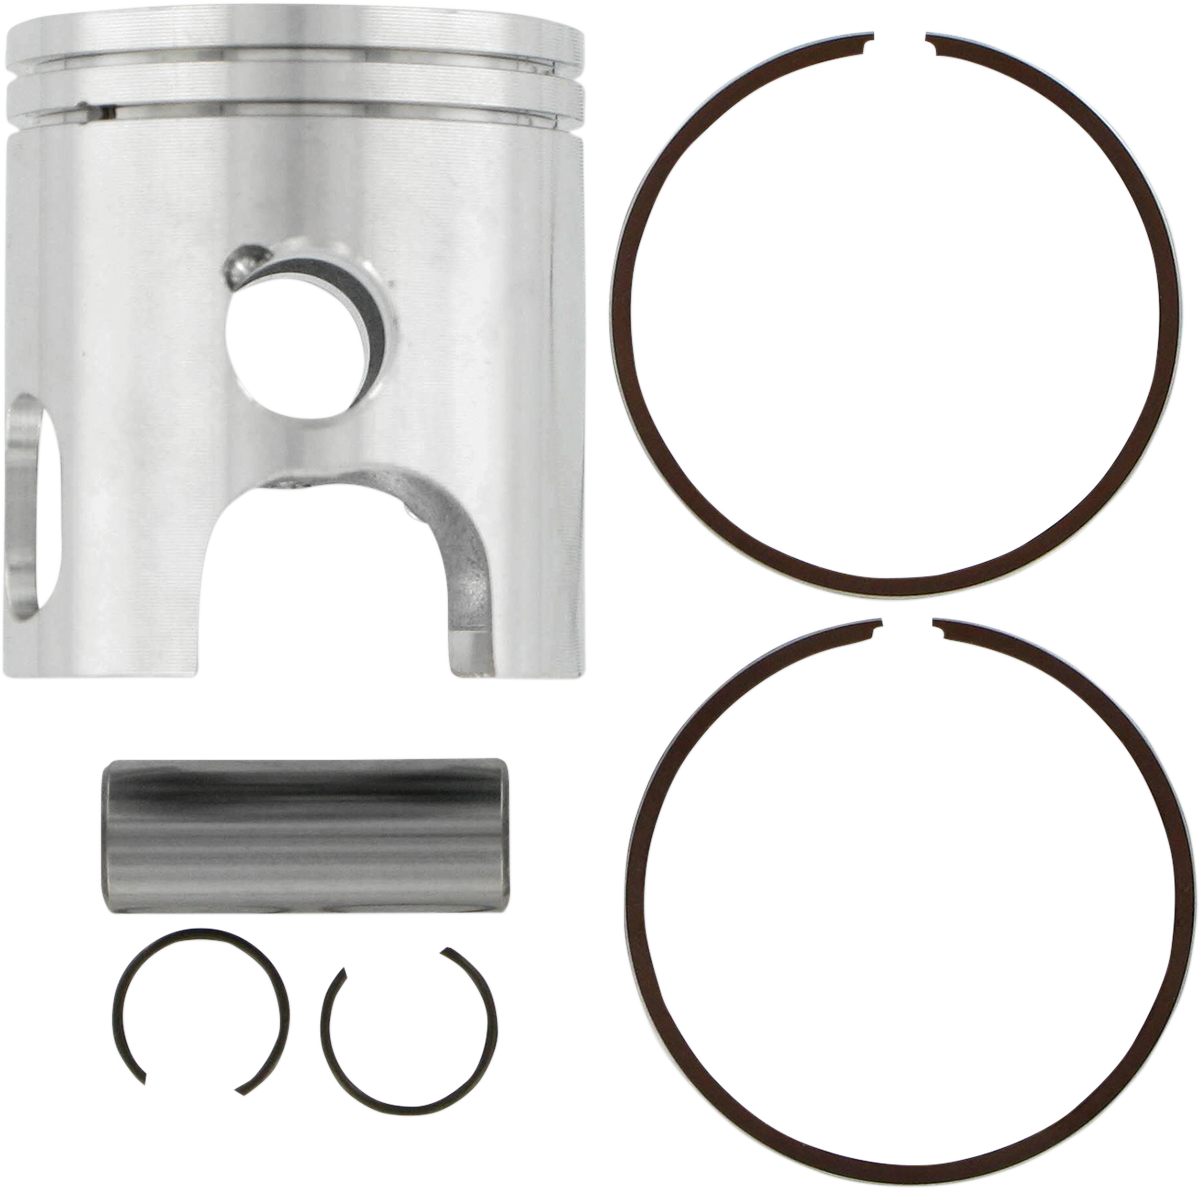 WISECO HIGH-PERFORMANCE 2- AND 4-CYCLE MOTORCYCLE PISTONS WISECO PISTON YAM STD.